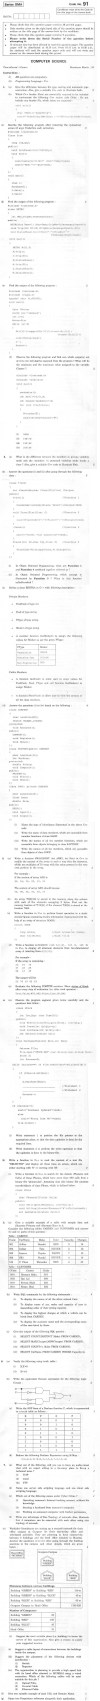 CBSE Class XII Previous Year Question Paper 2012 Computer Science